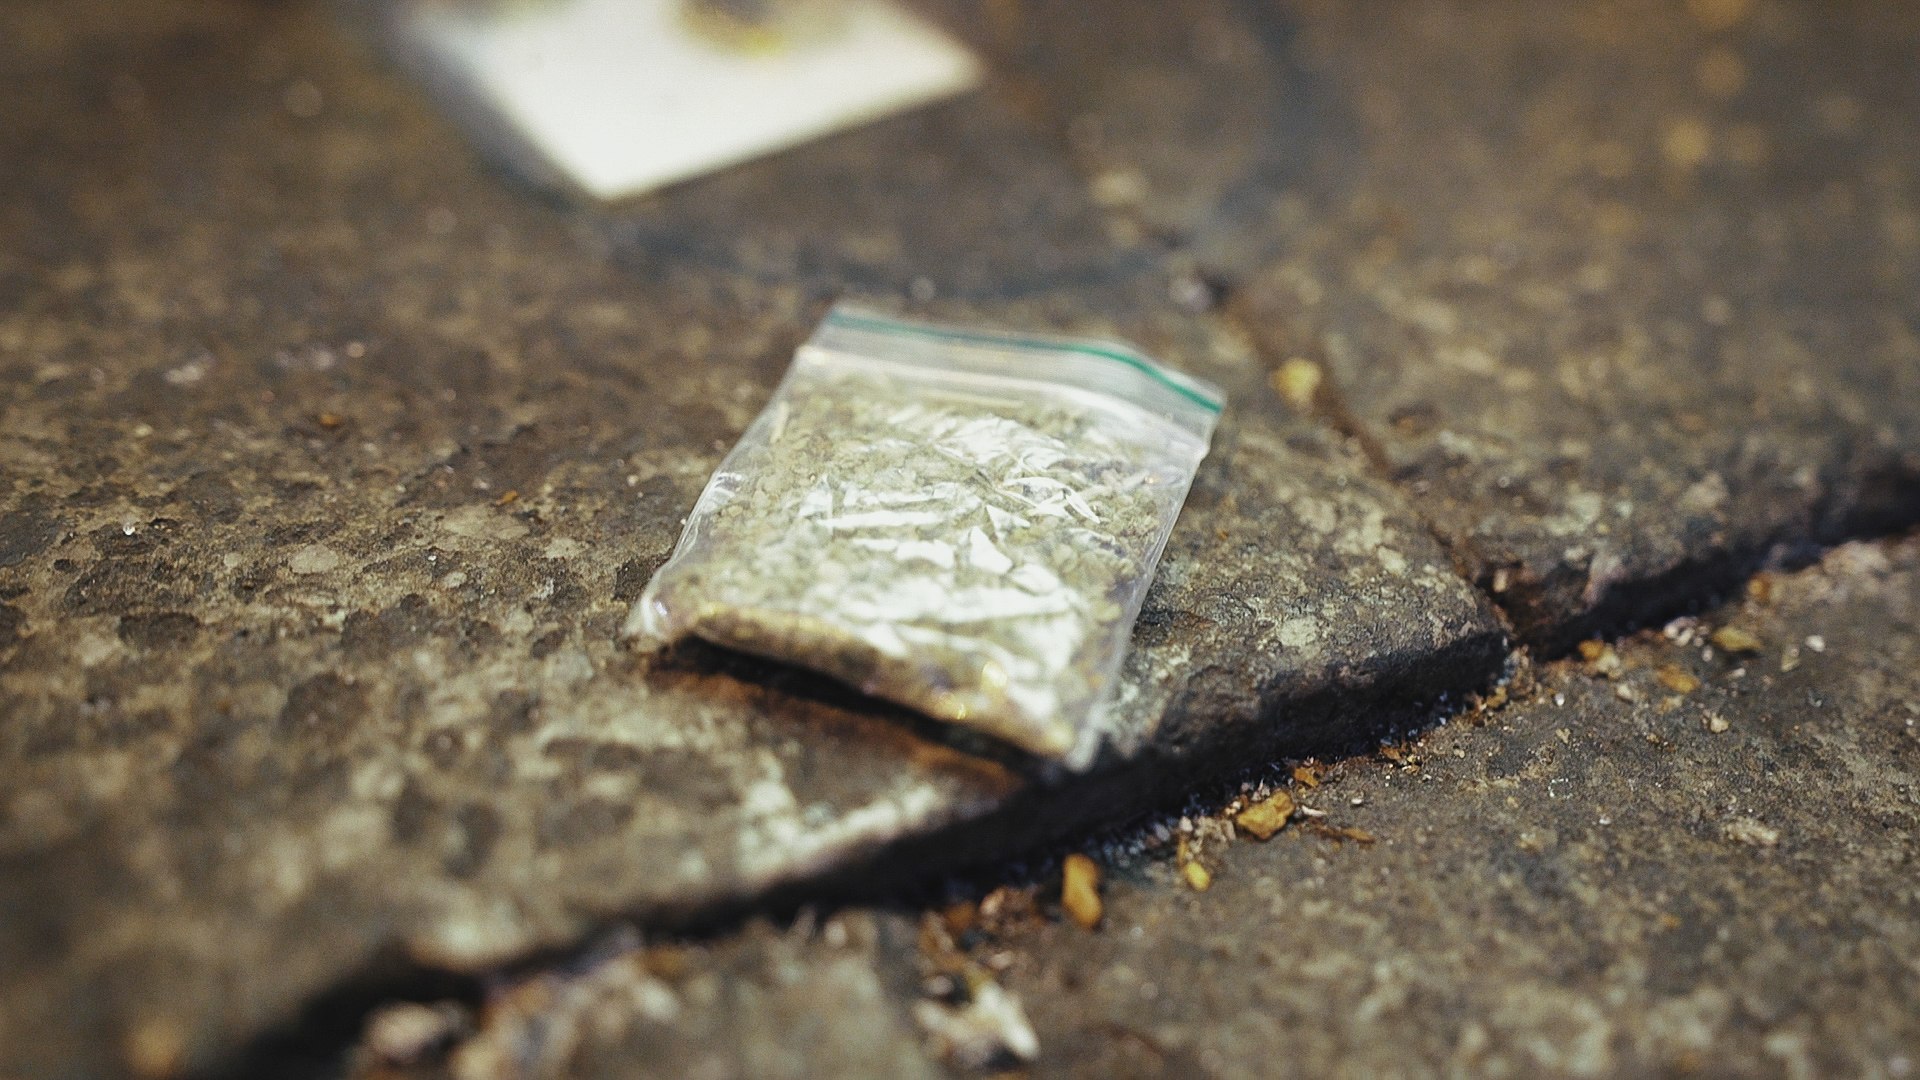 A baggie of spice on the street